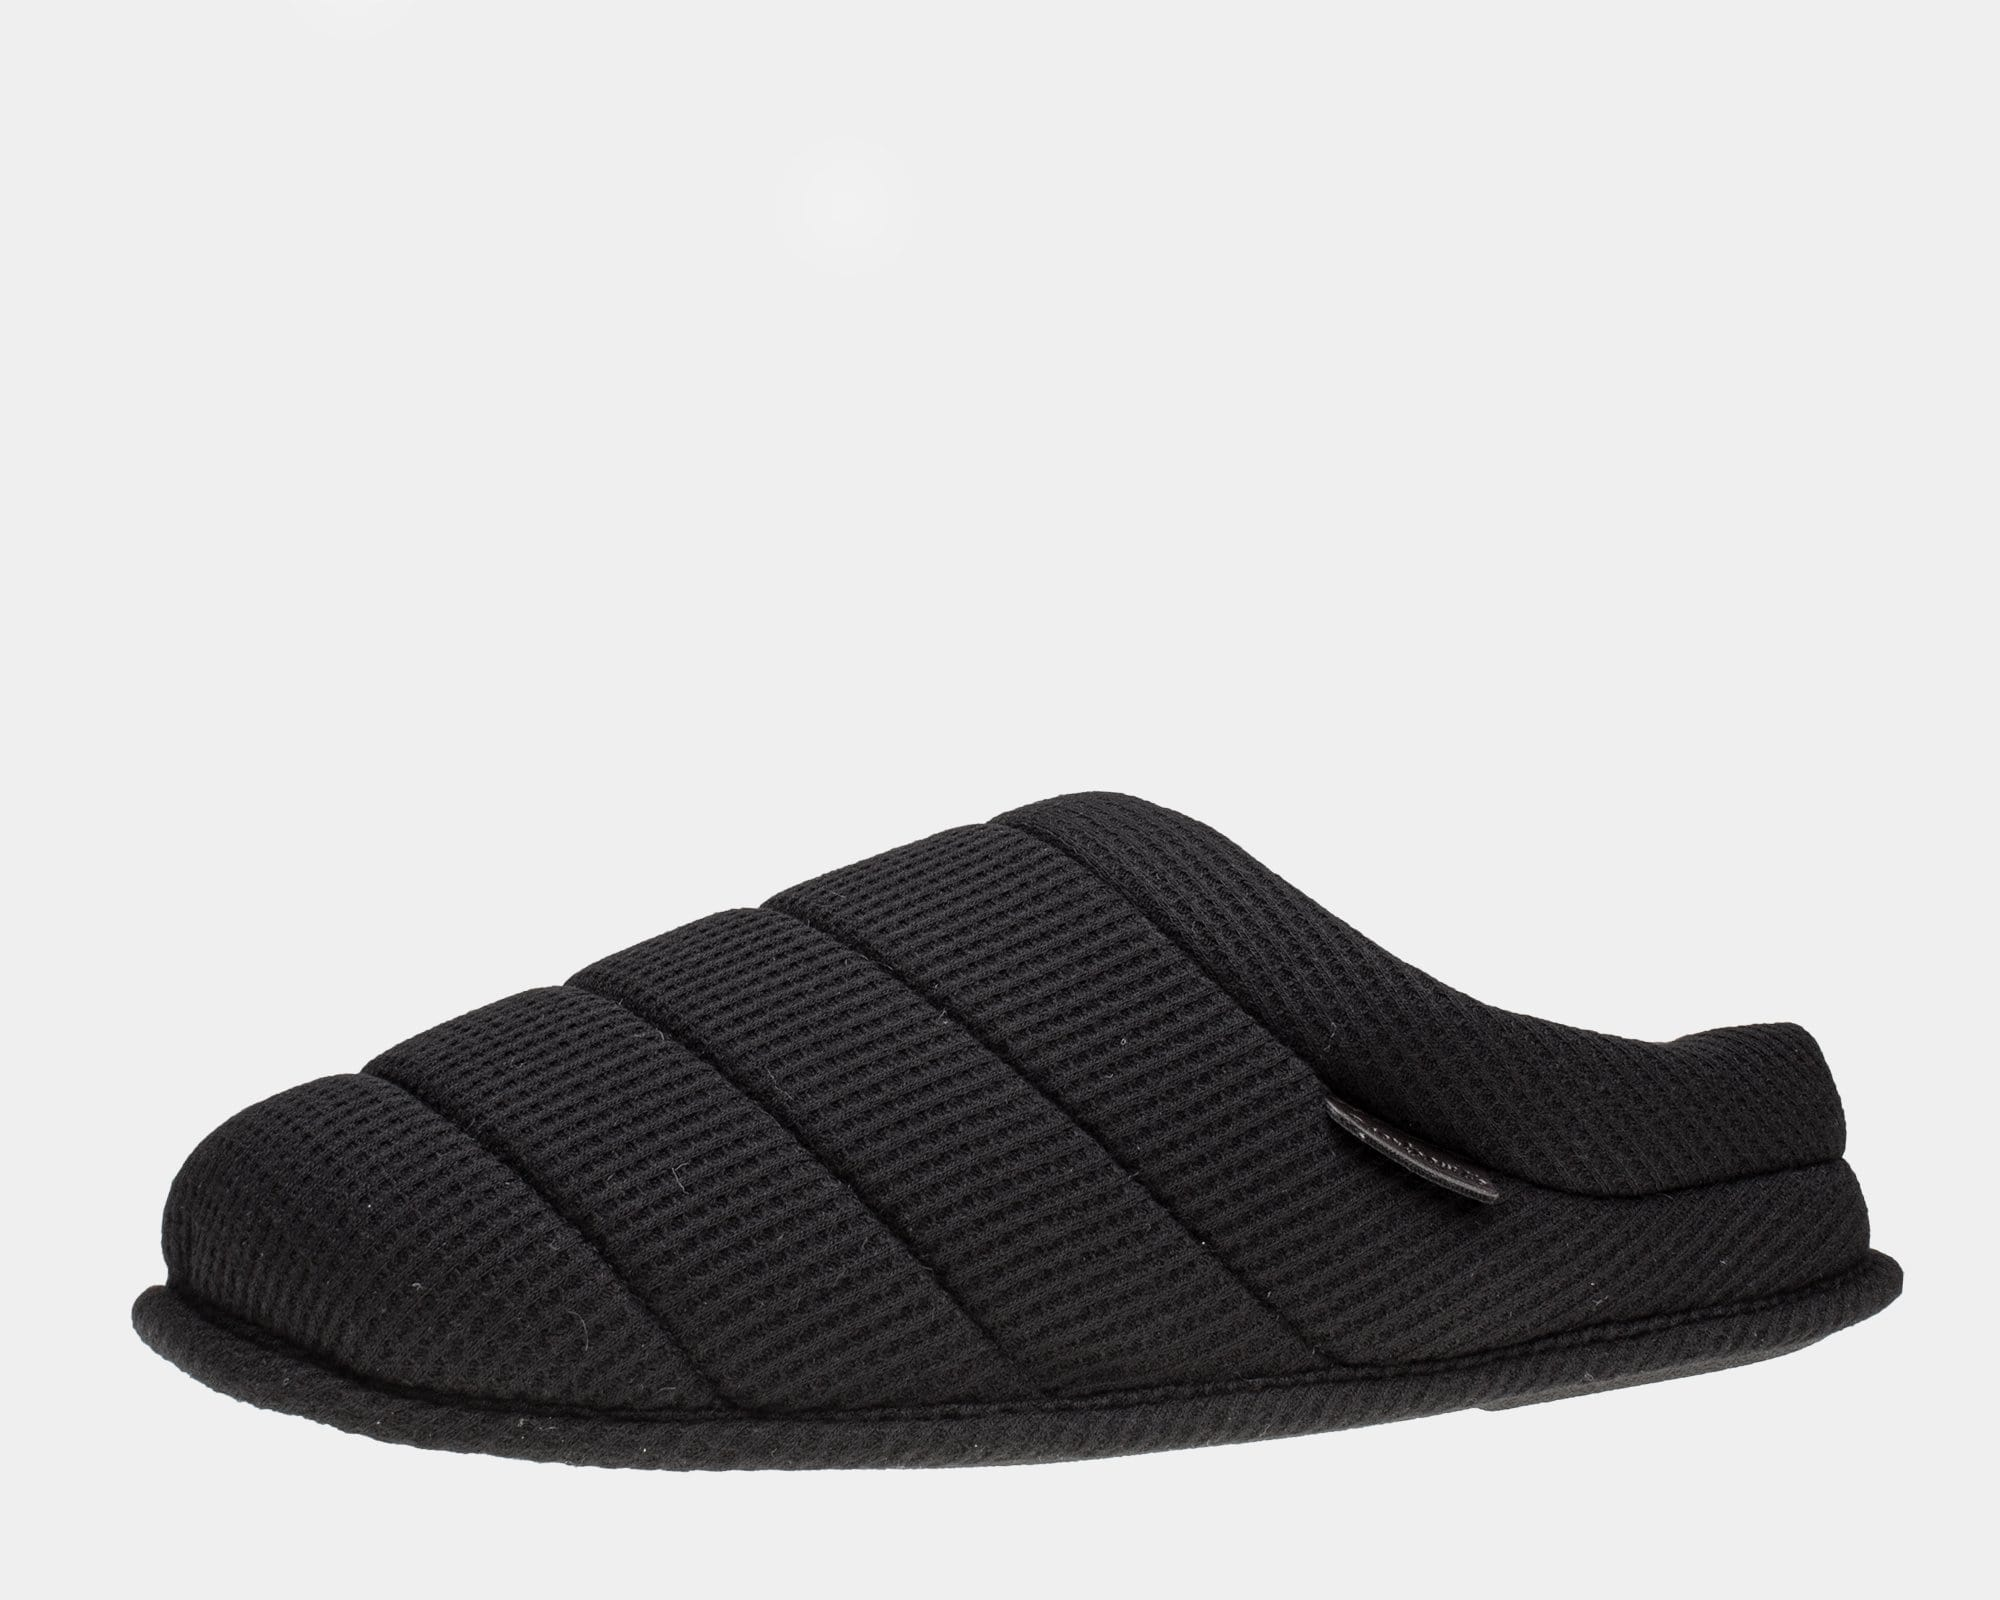 7b1c35a20 Dearfoams Quilted Clog Slipper - Mens Large Sizes